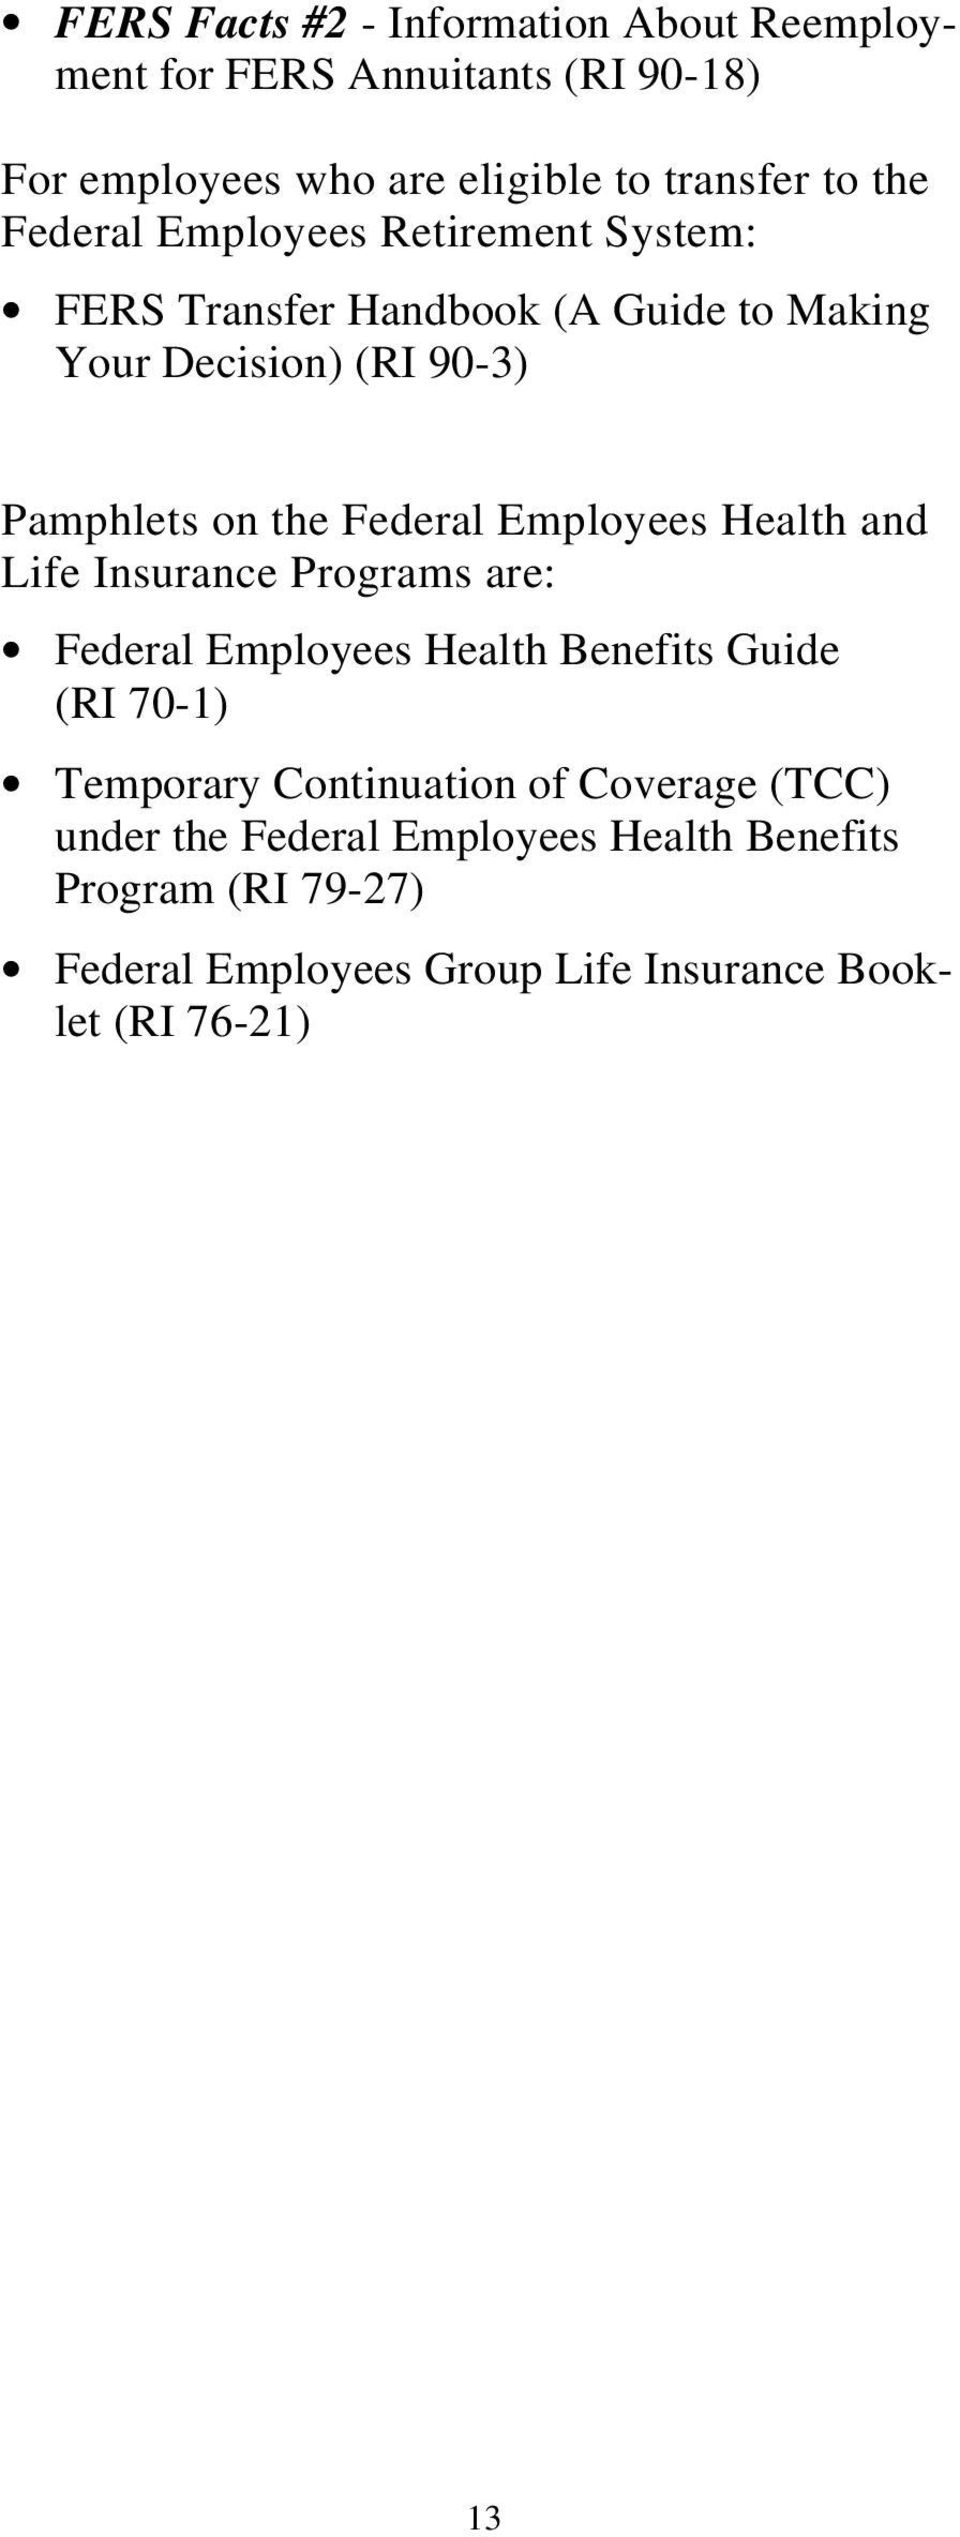 Employees Health and Life Insurance Programs are: Federal Employees Health Benefits Guide (RI 70-1) Temporary Continuation of